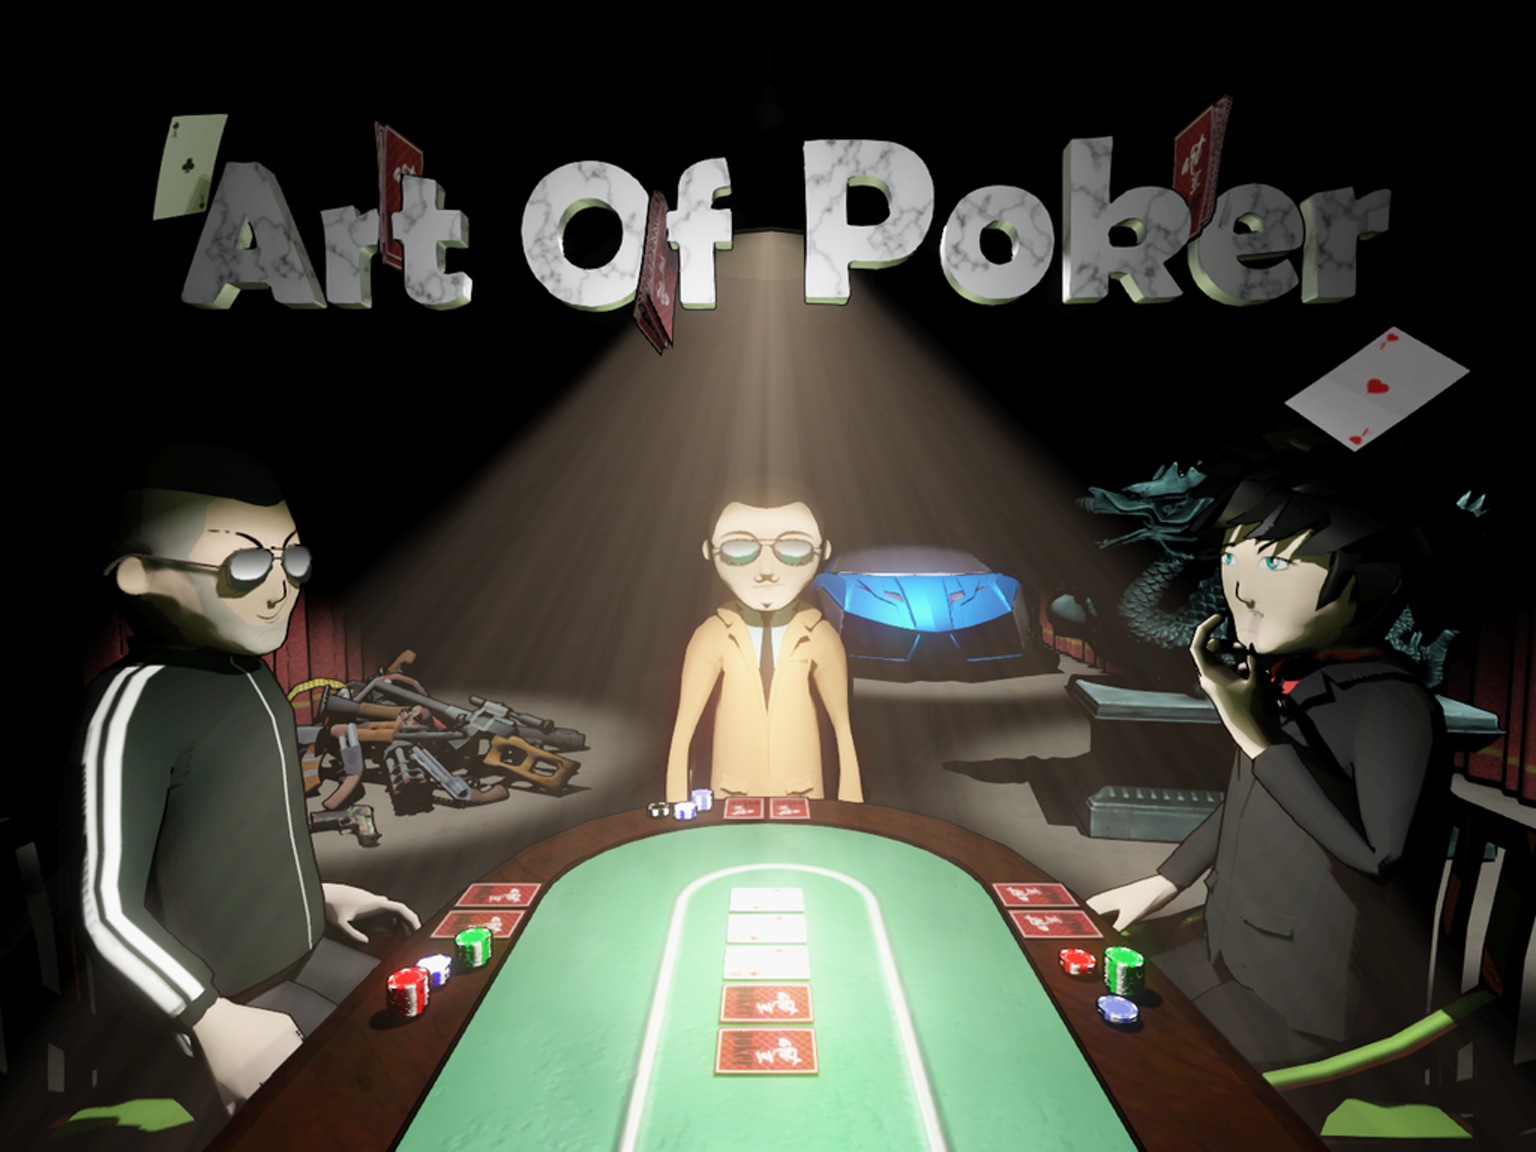 A multiplayer PC poker game with various gameplay